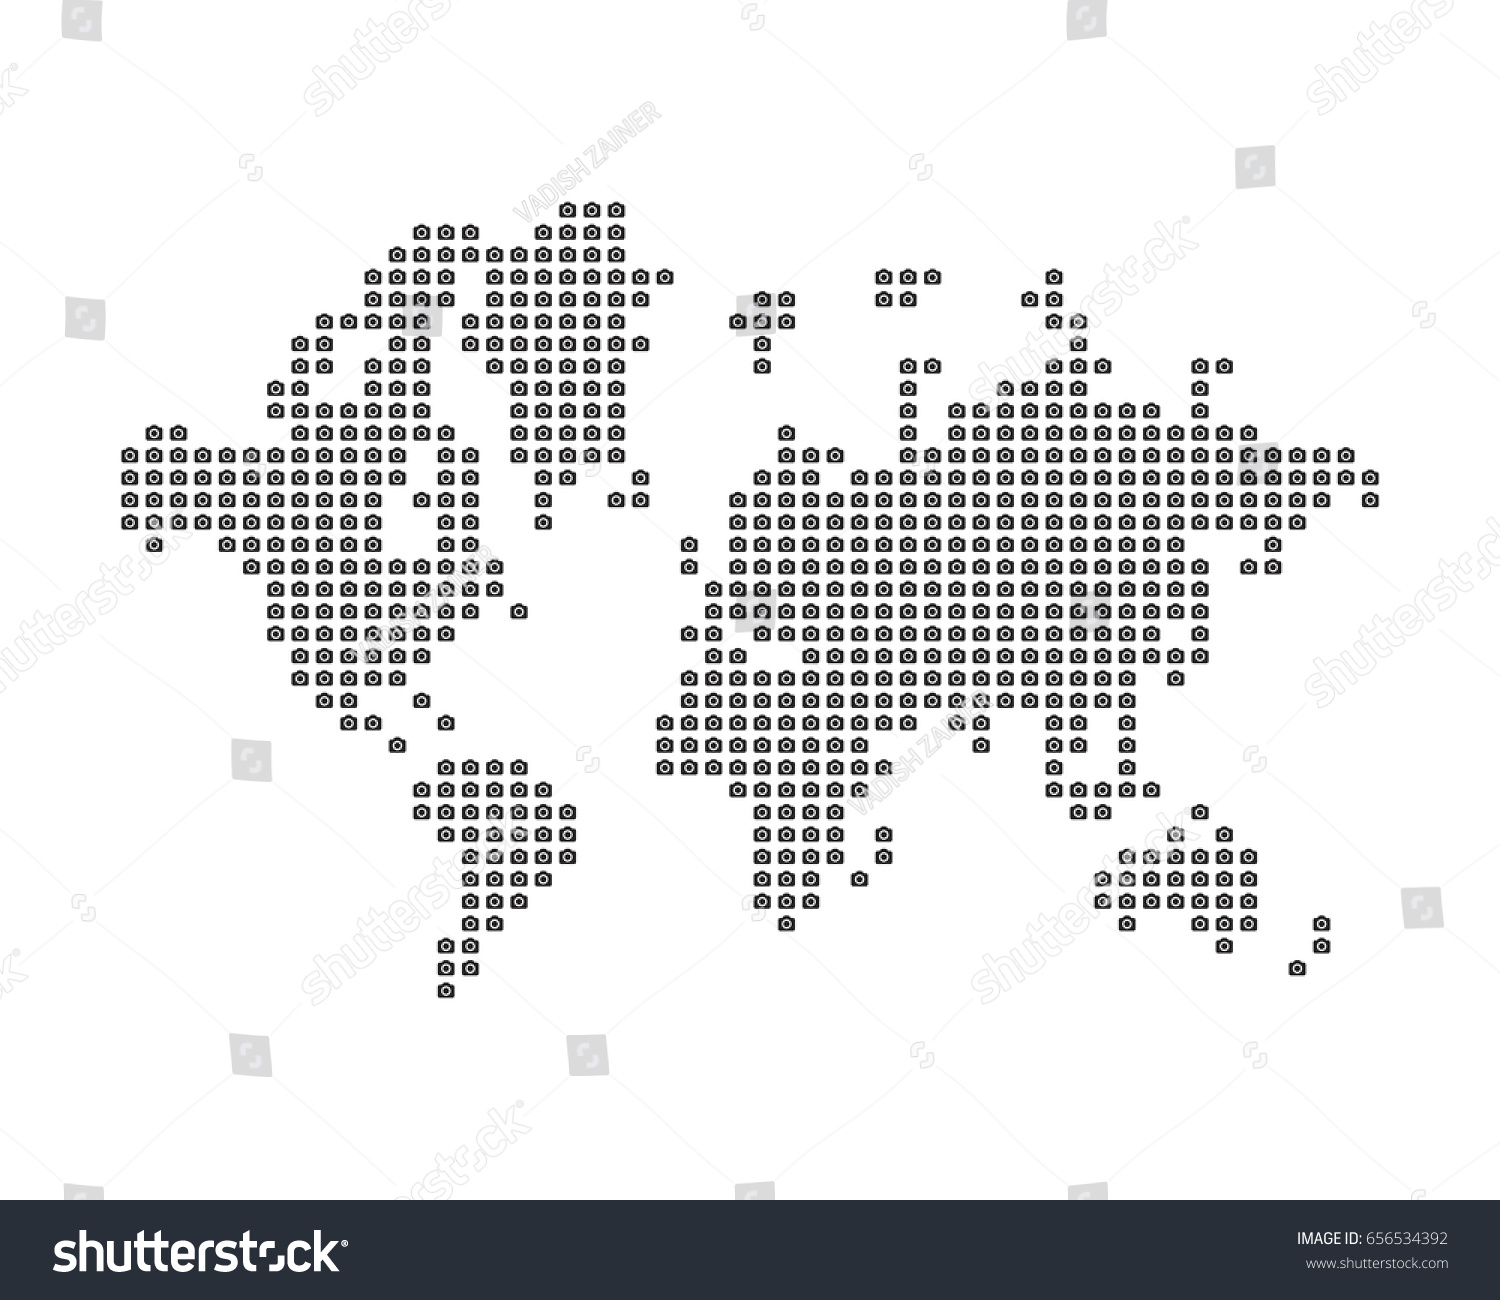 World map consists icon photo camera stock vector 656534392 the world map consists of icon photo camera concept for photographer flat vector illustration gumiabroncs Images